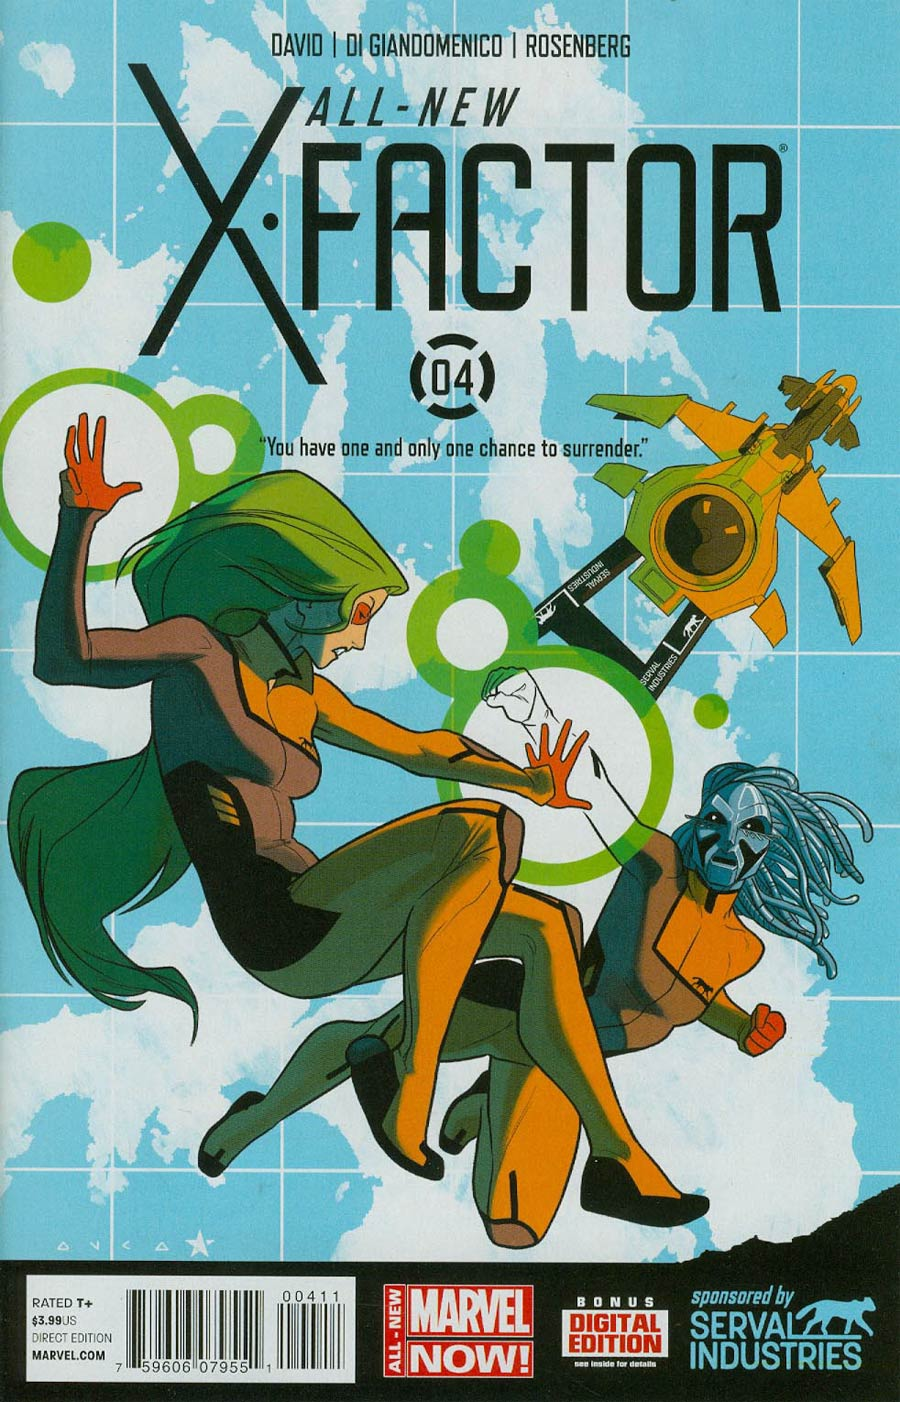 All-New X-Factor #4